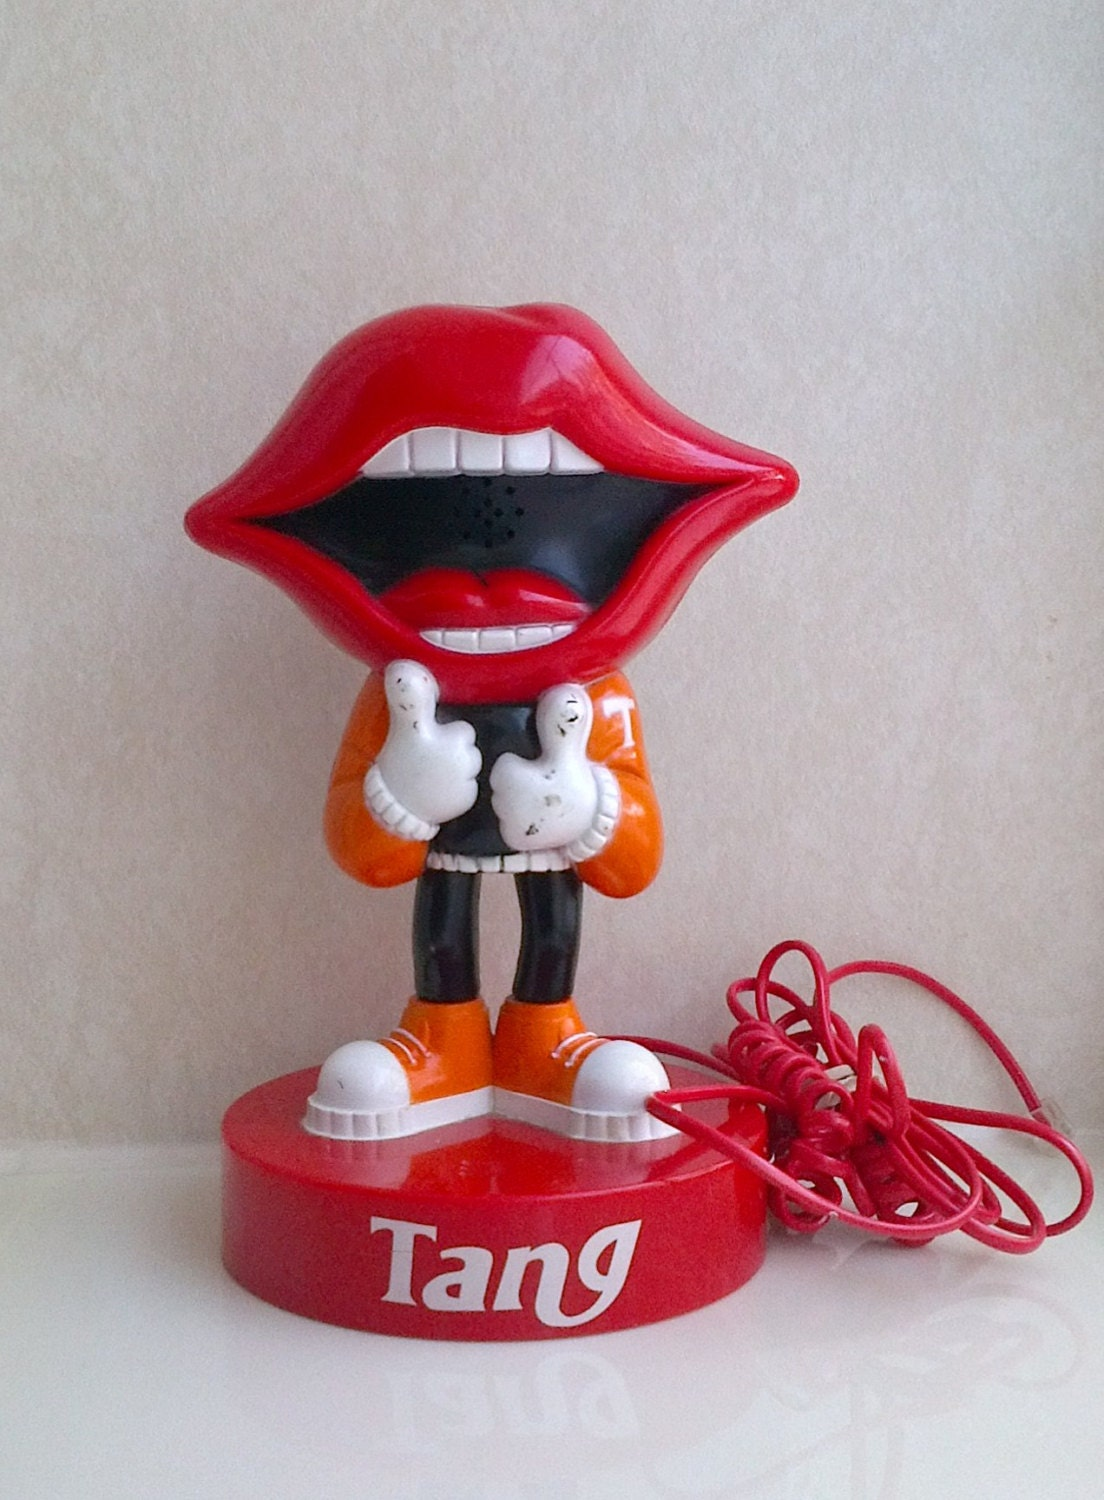 1980s Vintage Advertising Plastic Novelty Telephone Figure - Tang Powder Orange Juice Drink - Red Lips Mouth - Rare Mascot Push Button WORKS